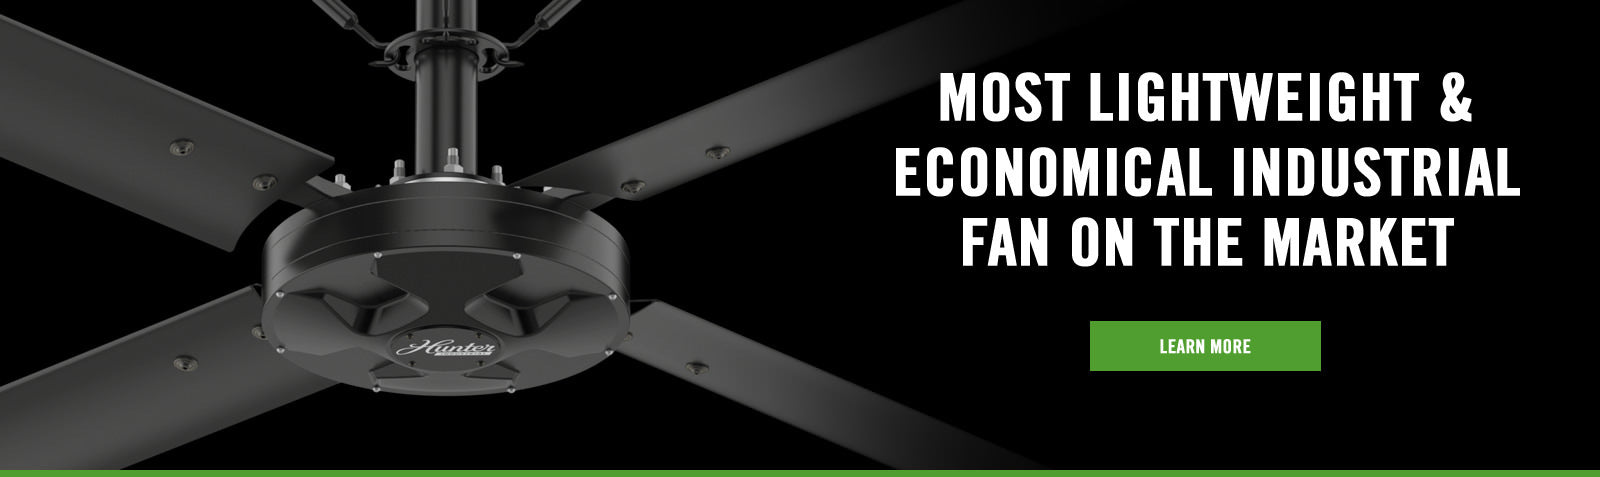 ECO | MOST LIGHTWEIGHT & ECONOMICAL INDUSTRIAL FAN ON THE MARKET